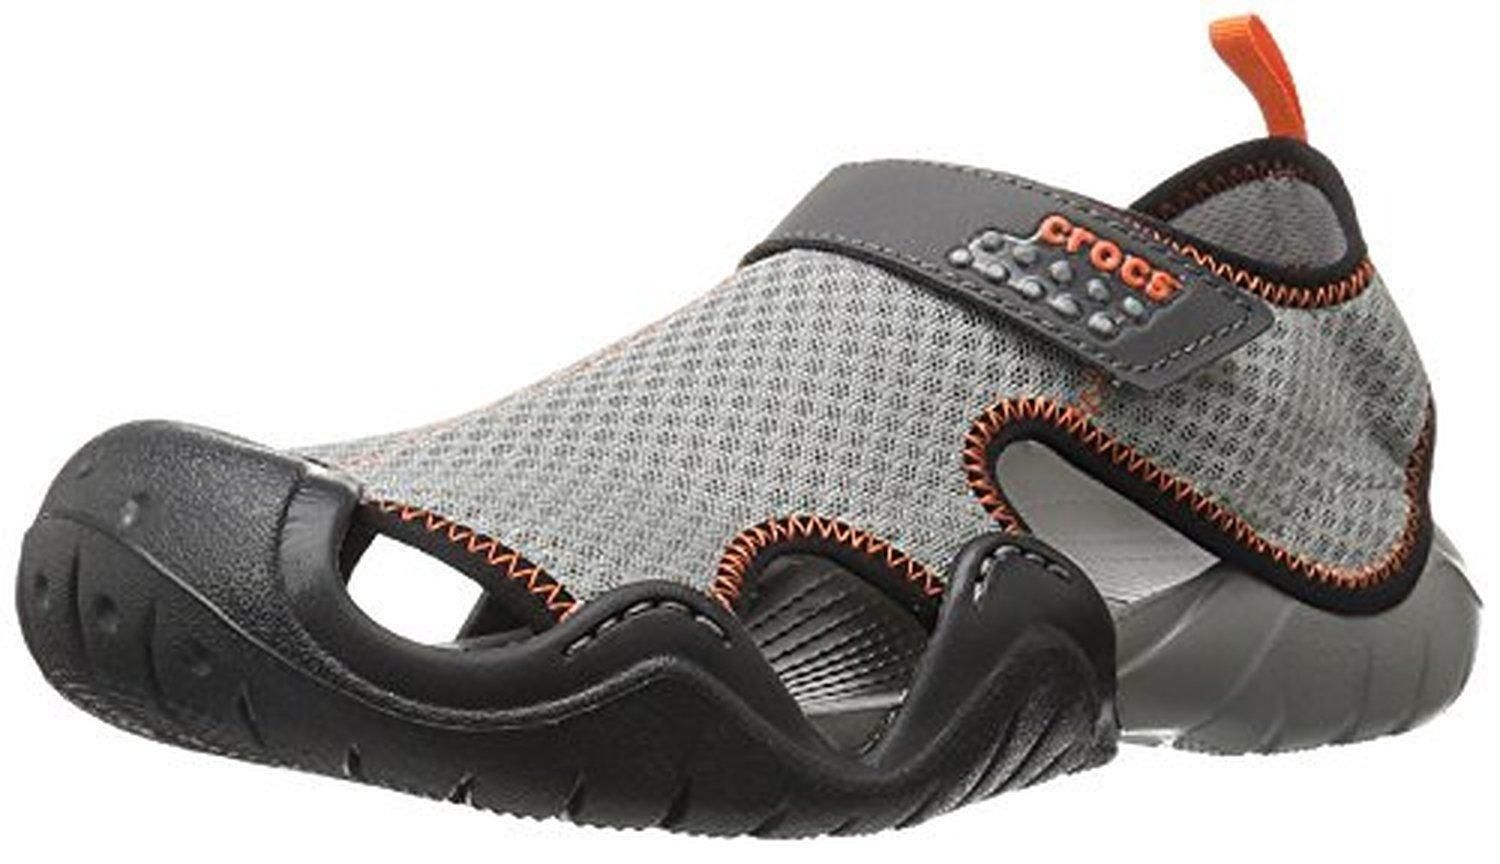 200d61dd0c1ff crocs Men's Swiftwater Flat Sandal, Smoke/Graphite, 11 M US - Brought to  you by Avarsha.com